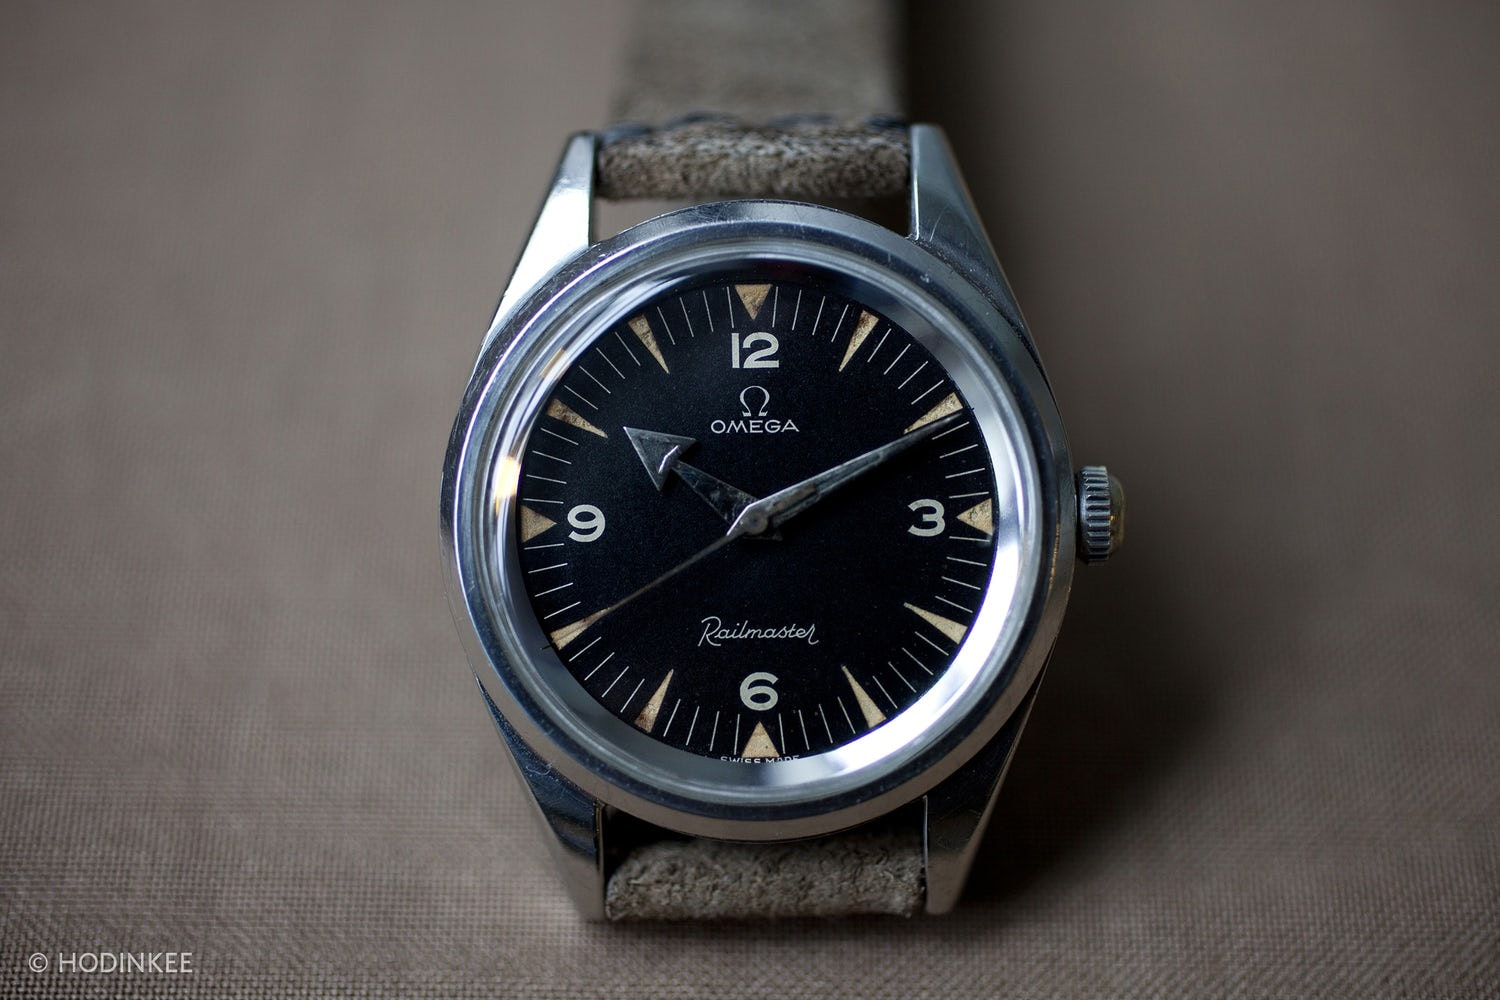 A Week On The Wrist: The Omega Seamaster Railmaster A Week On The Wrist: The Omega Seamaster Railmaster rail